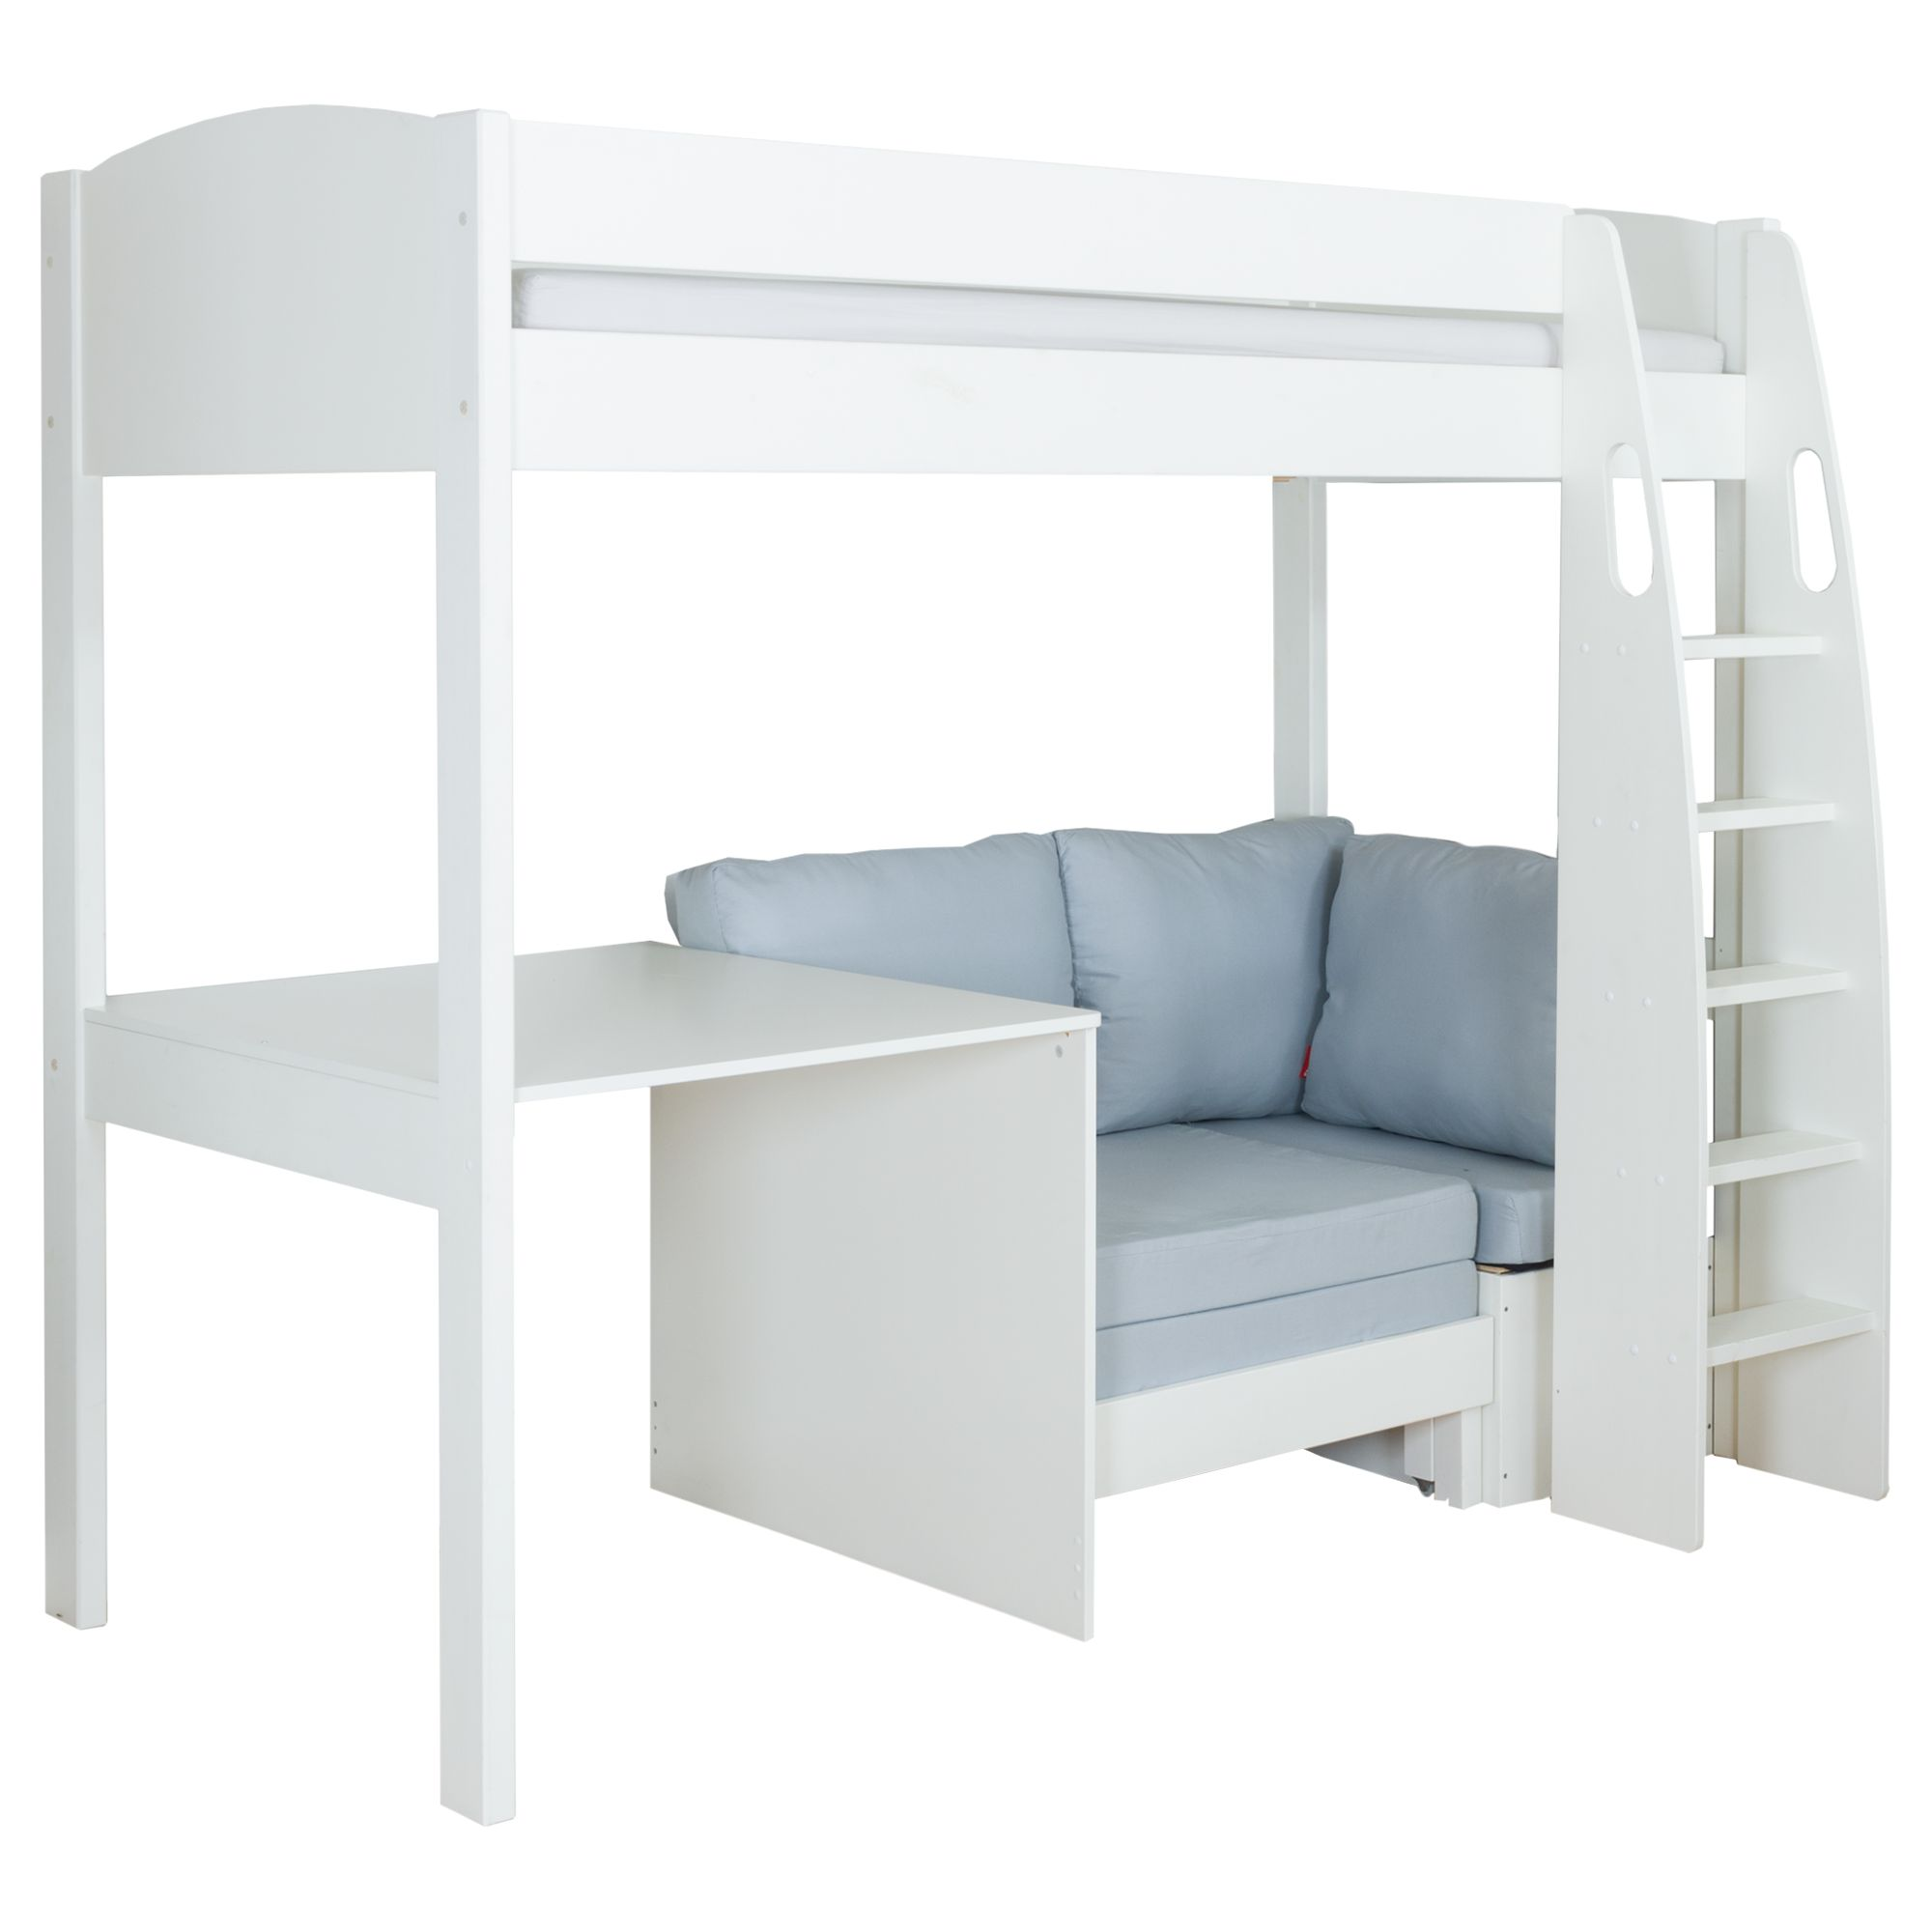 Stompa Stompa Uno S Plus High-Sleeper Bed with Fixed Desk and Chair Bed